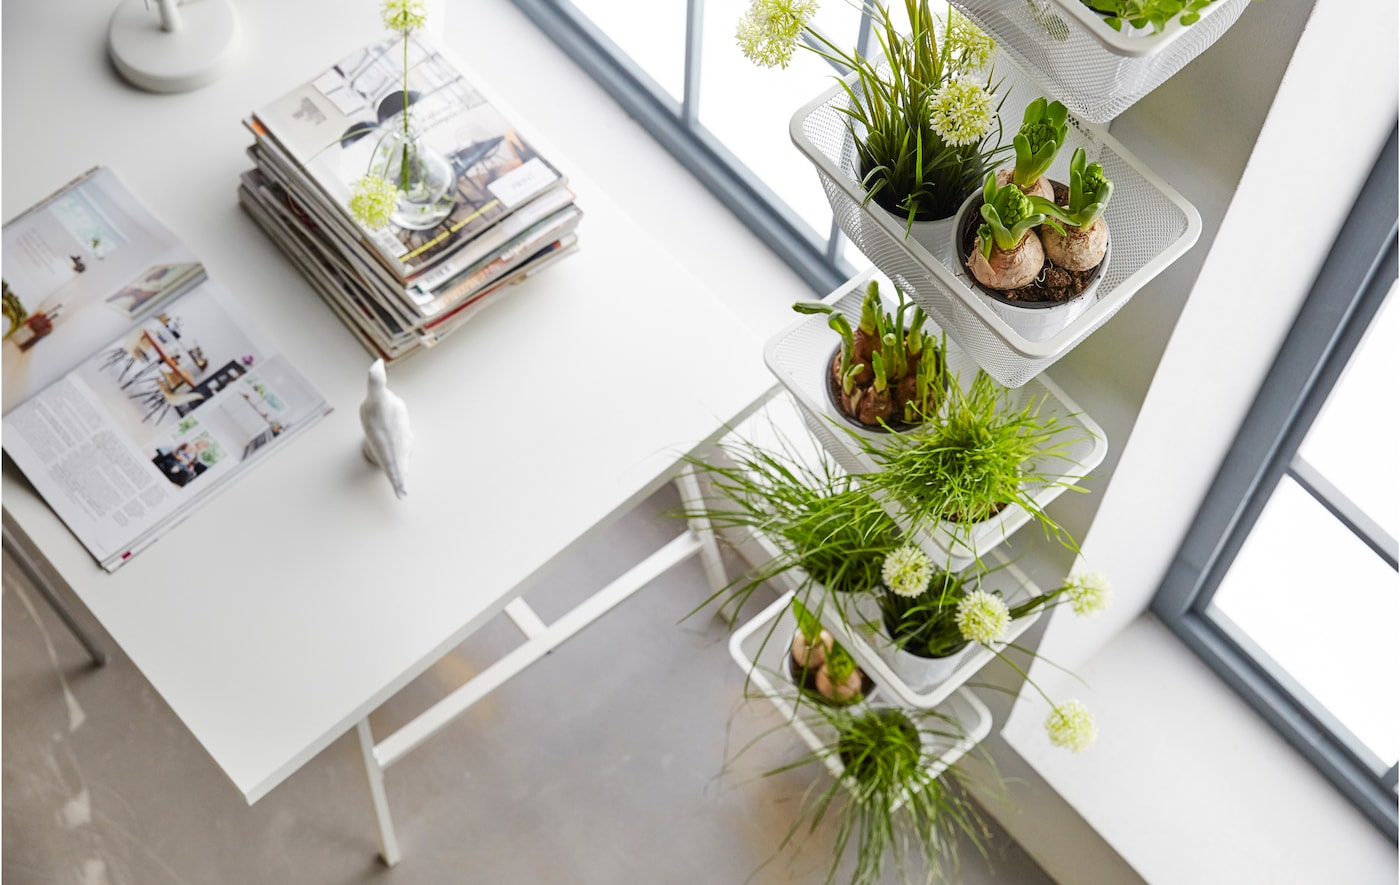 Got garden dreams but only a small apartment? Here's how to make the most of your space.